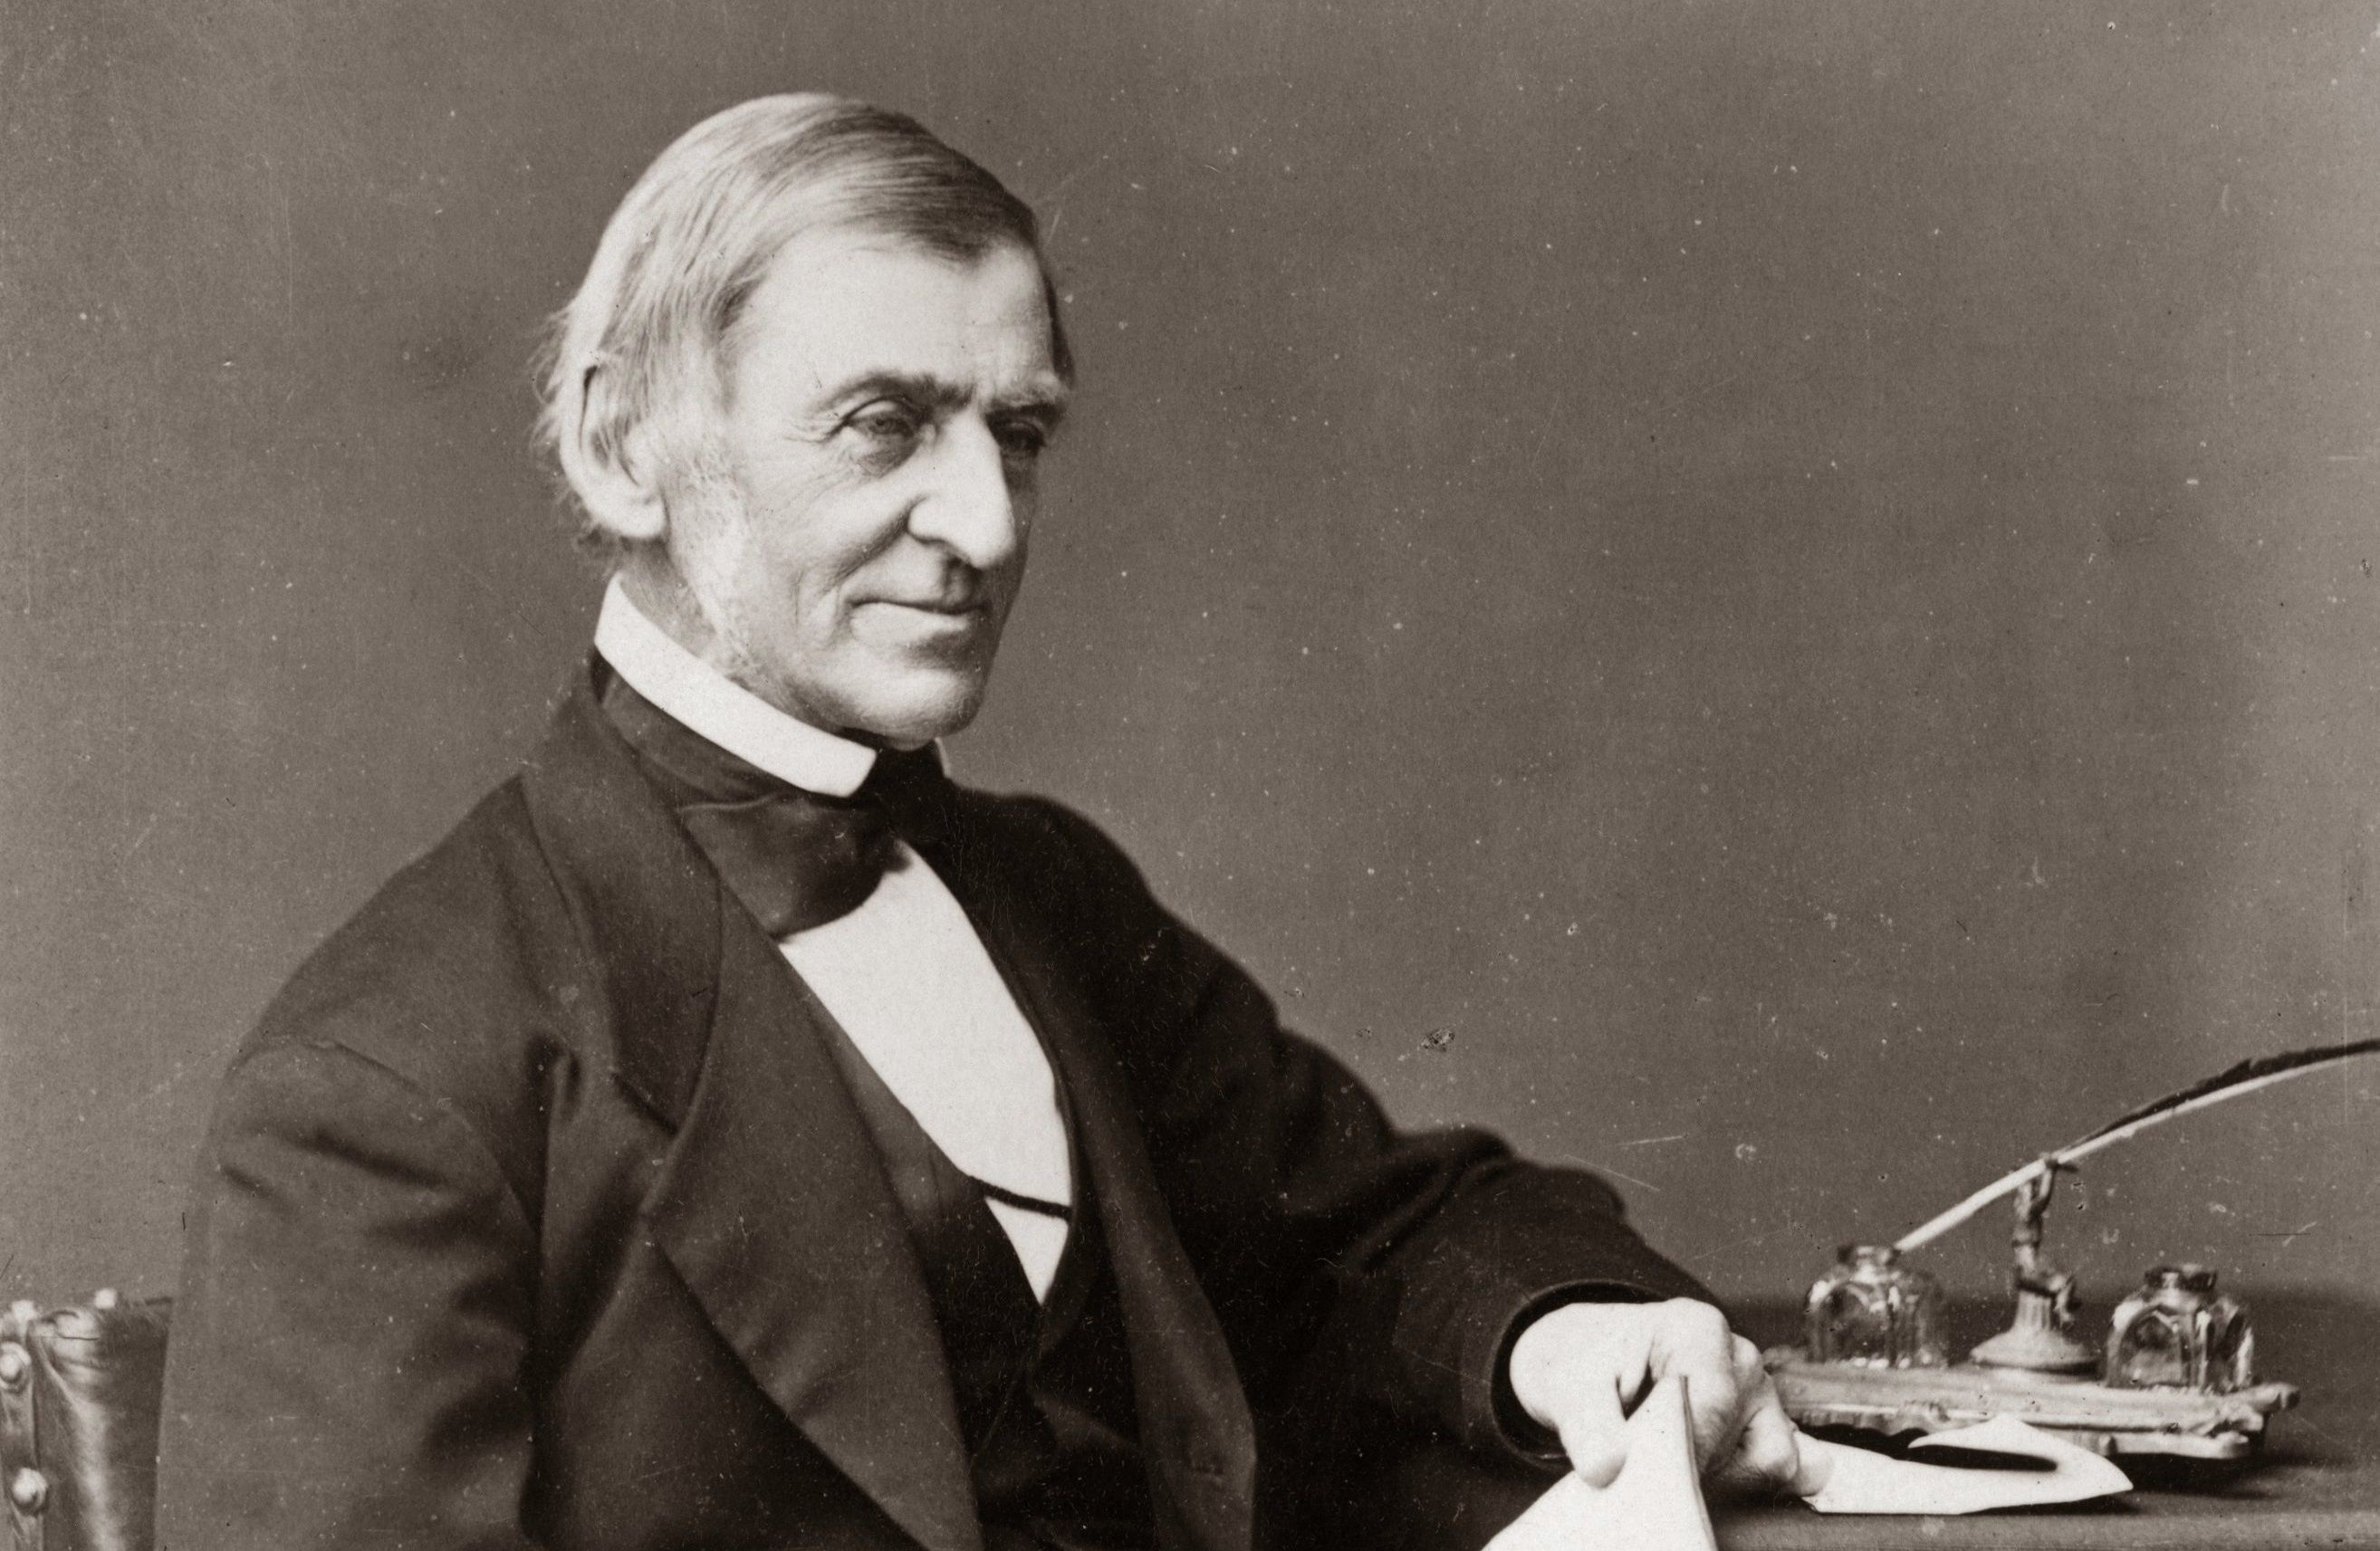 Biography of ralph waldo emerson for The emerson